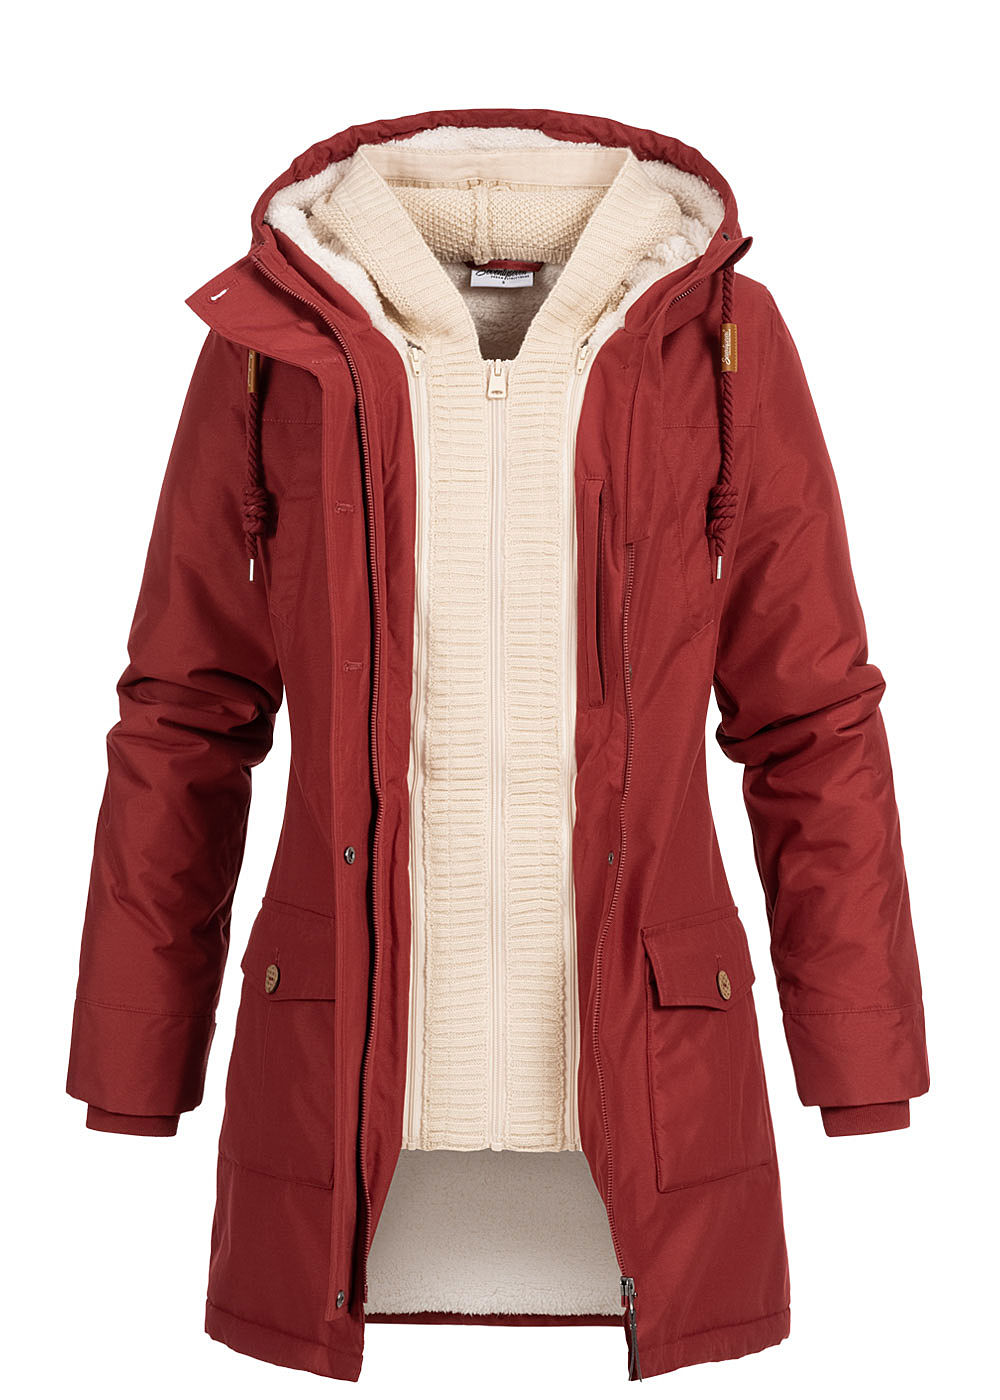 Seventyseven Lifestyle Damen Winter Jacke Kapuze 6-Pockets Strickeinsatz bordeaux rot - Art.-Nr.: 19118021